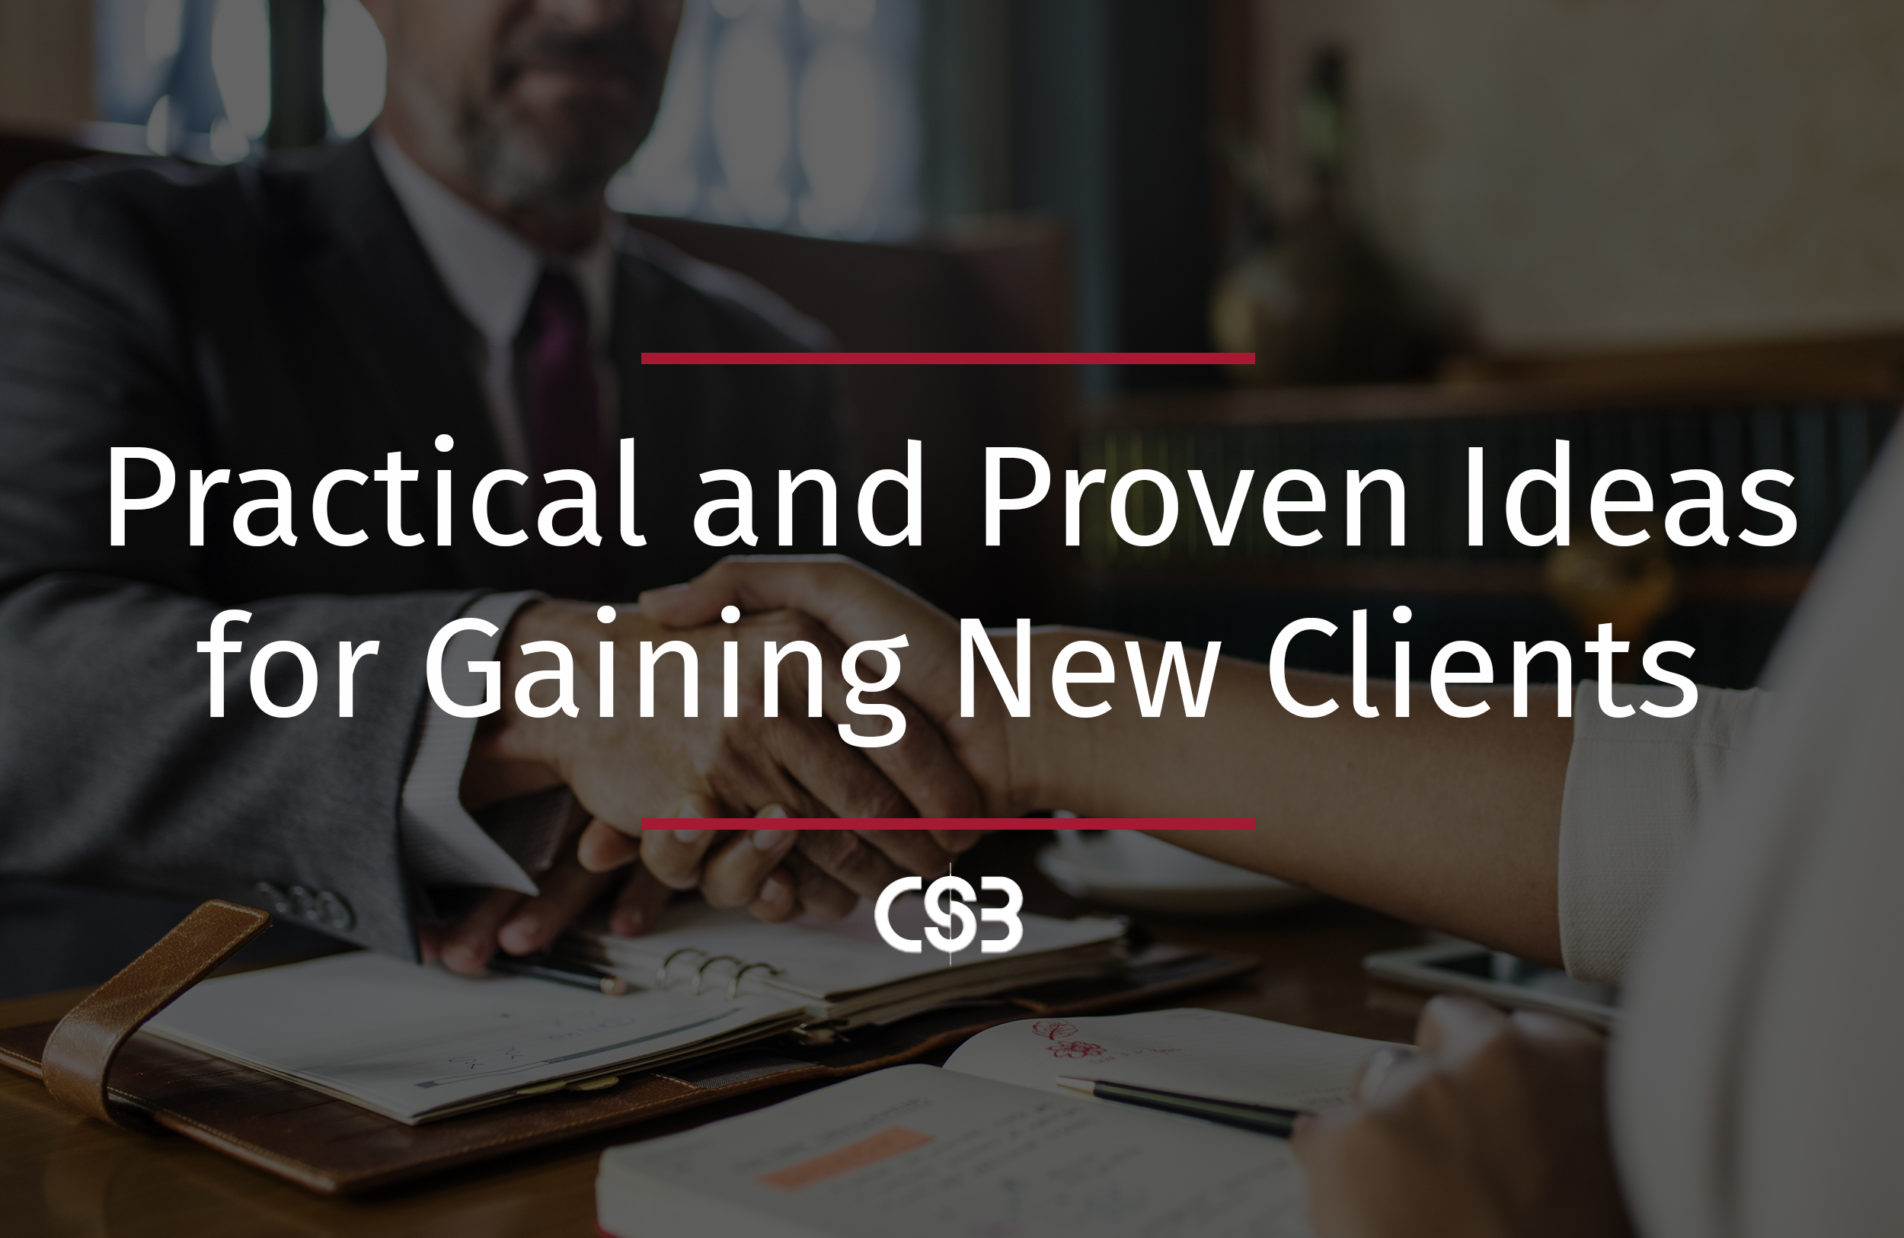 Practical and Proven Ideas for Gaining New Clients